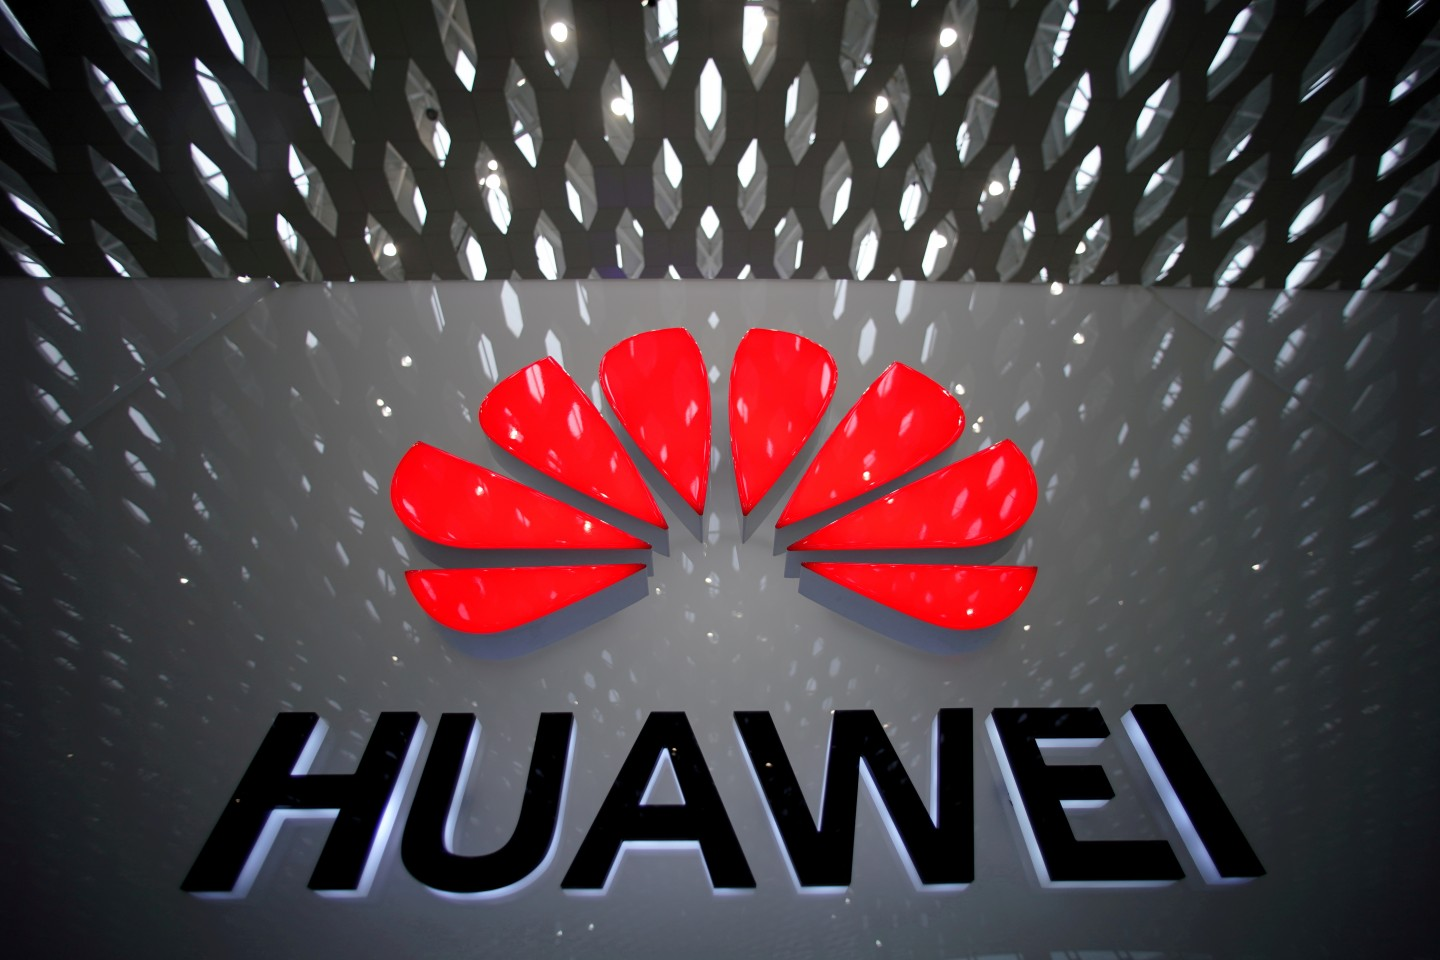 Huawei's resilience and counter attacking moves are more powerful than expected. (REUTERS/Aly Song/File Photo)